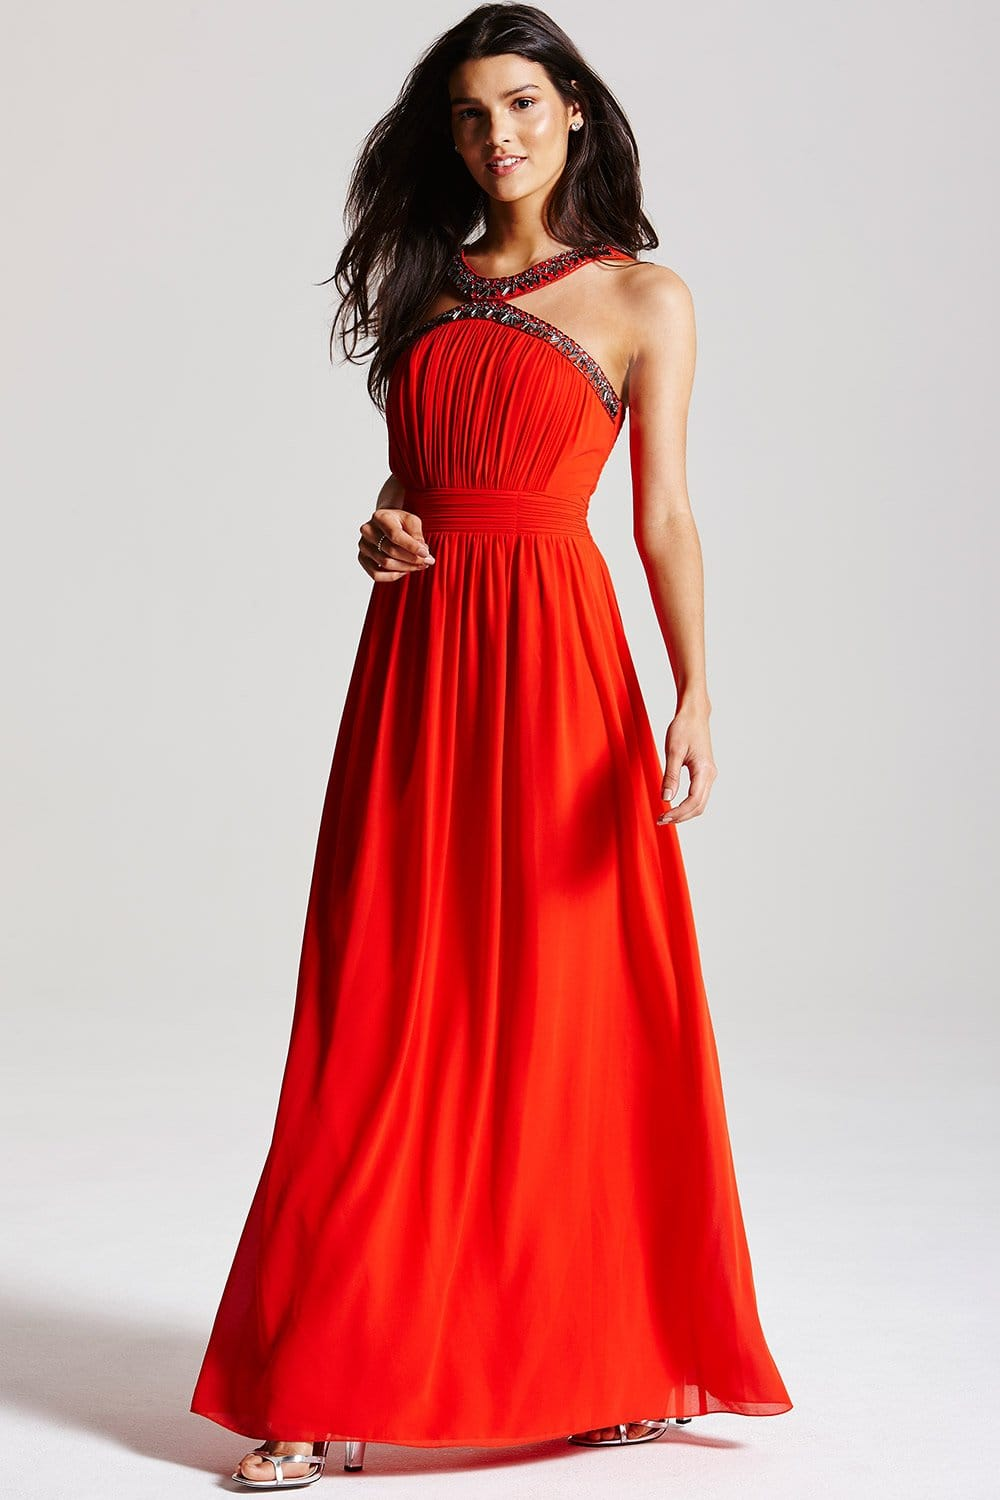 Orange Red Round Neck Chiffon Overlay Dress on sale only US$ now, buy cheap Orange Red Round Neck Chiffon Overlay Dress at topinsurances.ga